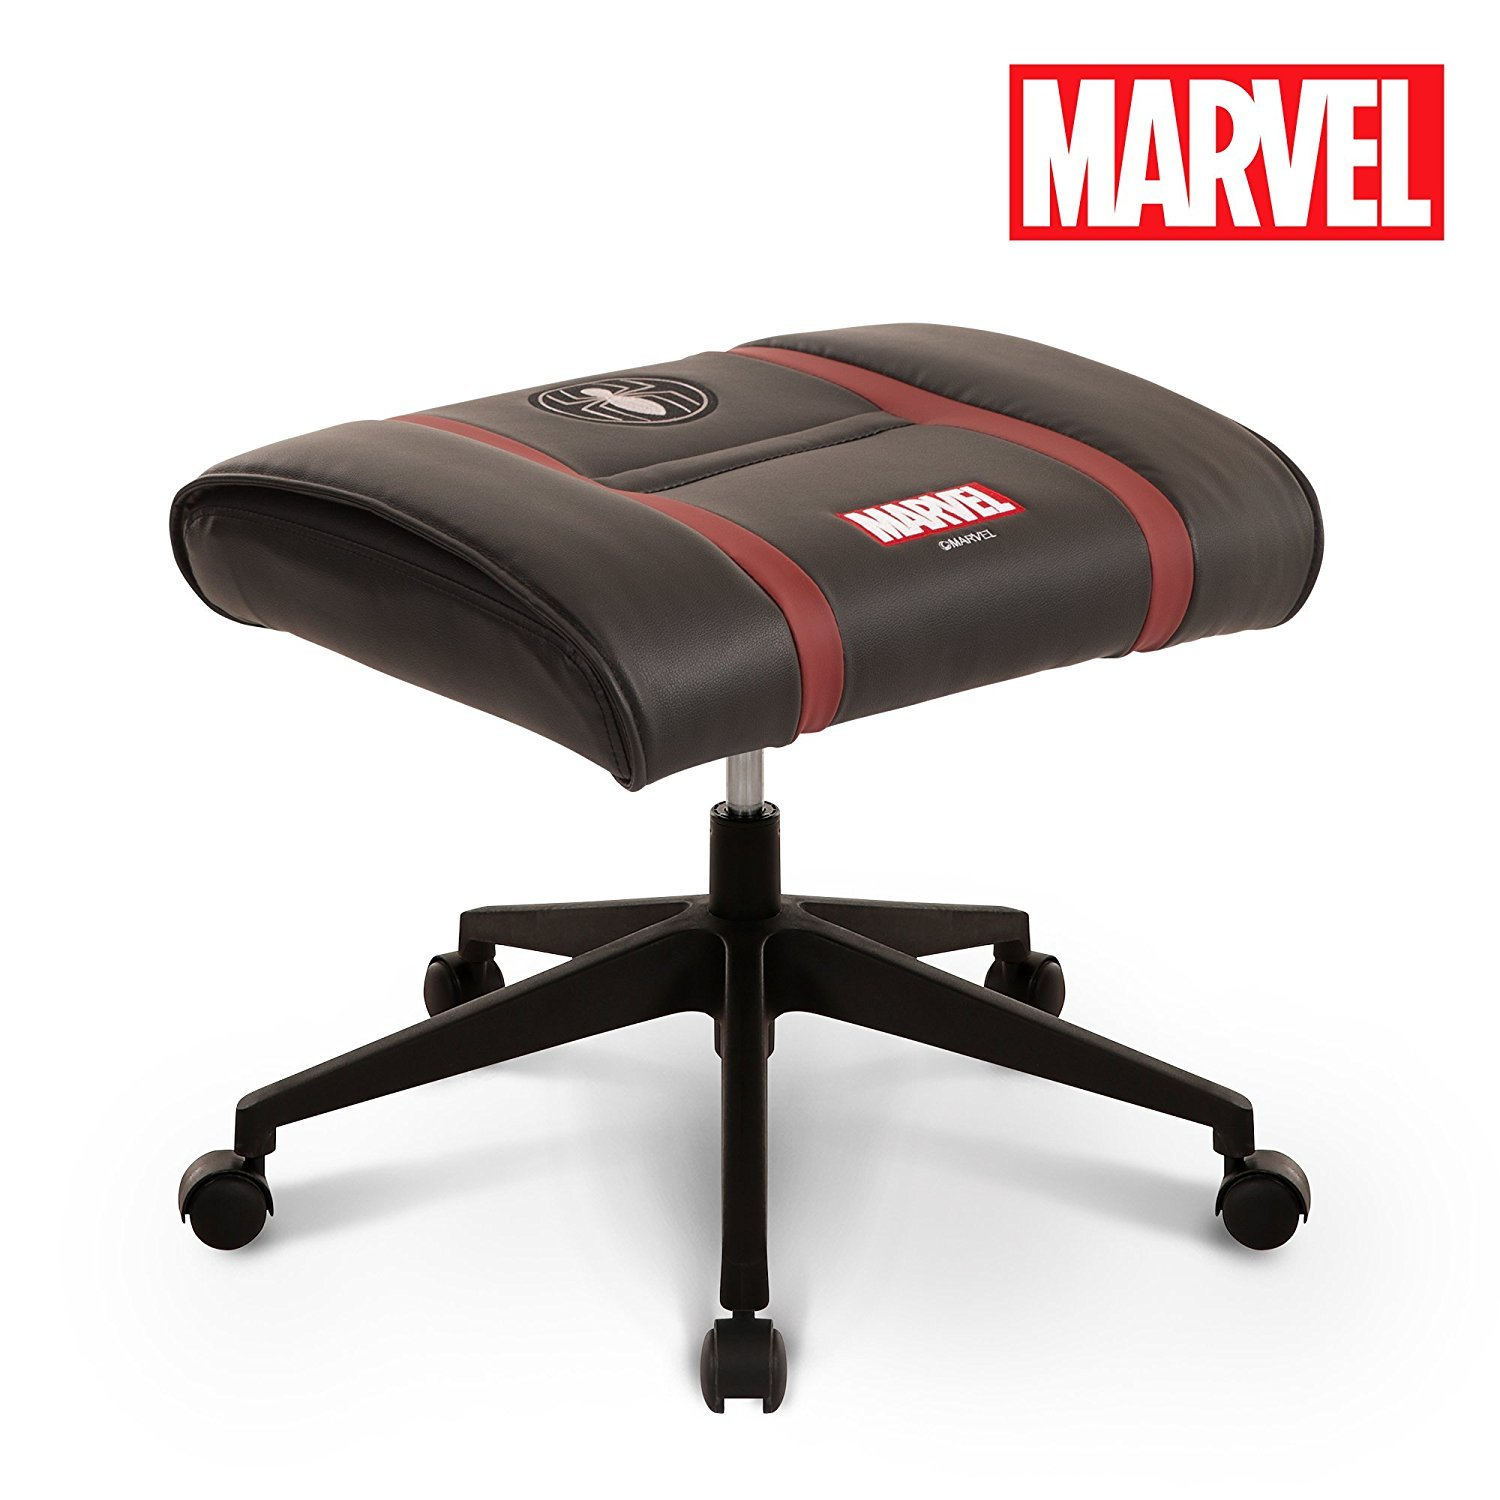 Licensed Marvel Ottoman Foot Rest Seat Stool w/Wheel : Height Adjustable Office Home Furniture Premium PU Leather, Neo Chair (Spider-Man, Black)